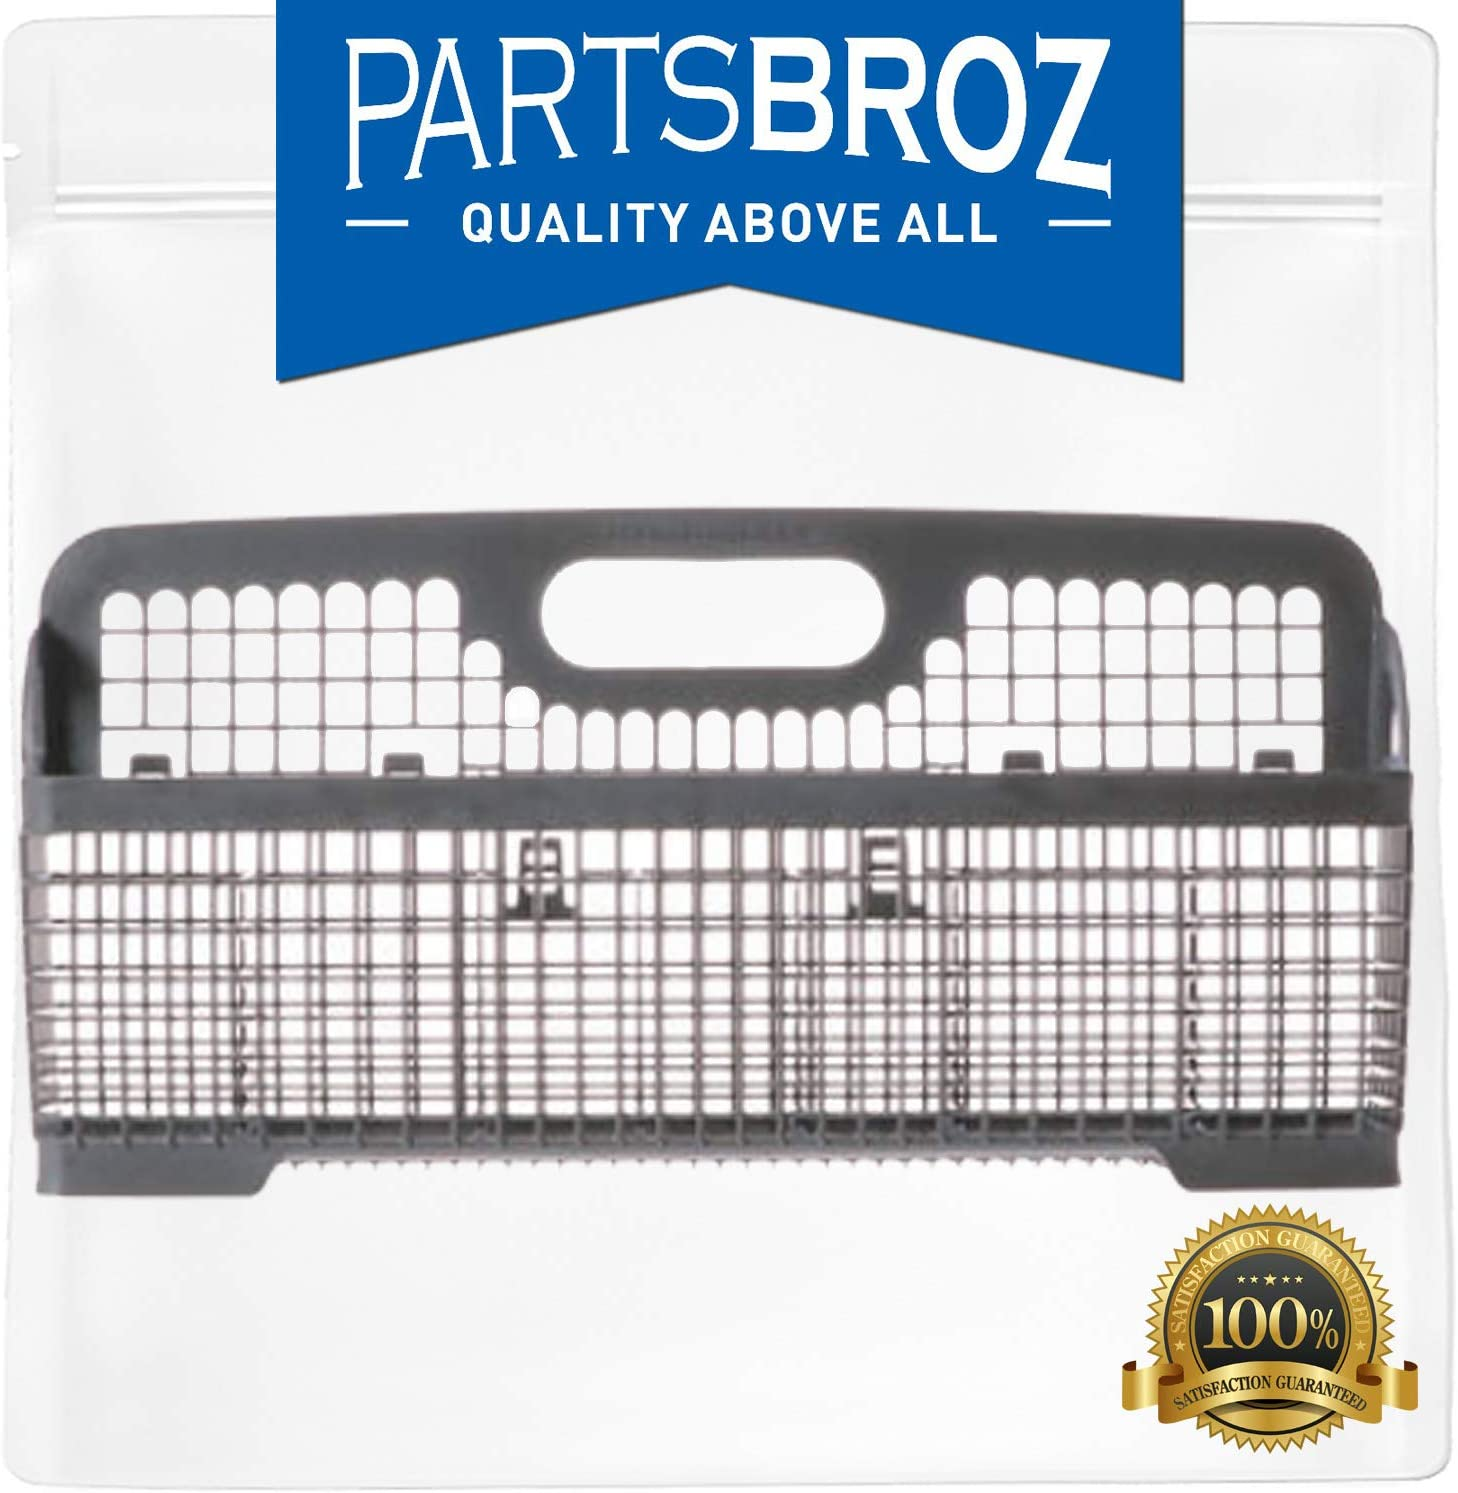 WP8531288 Silverware Basket by PartsBroz - Compatible with Whirlpool Dishwashers - Replaces AP6012914, 8531288, PS11746135